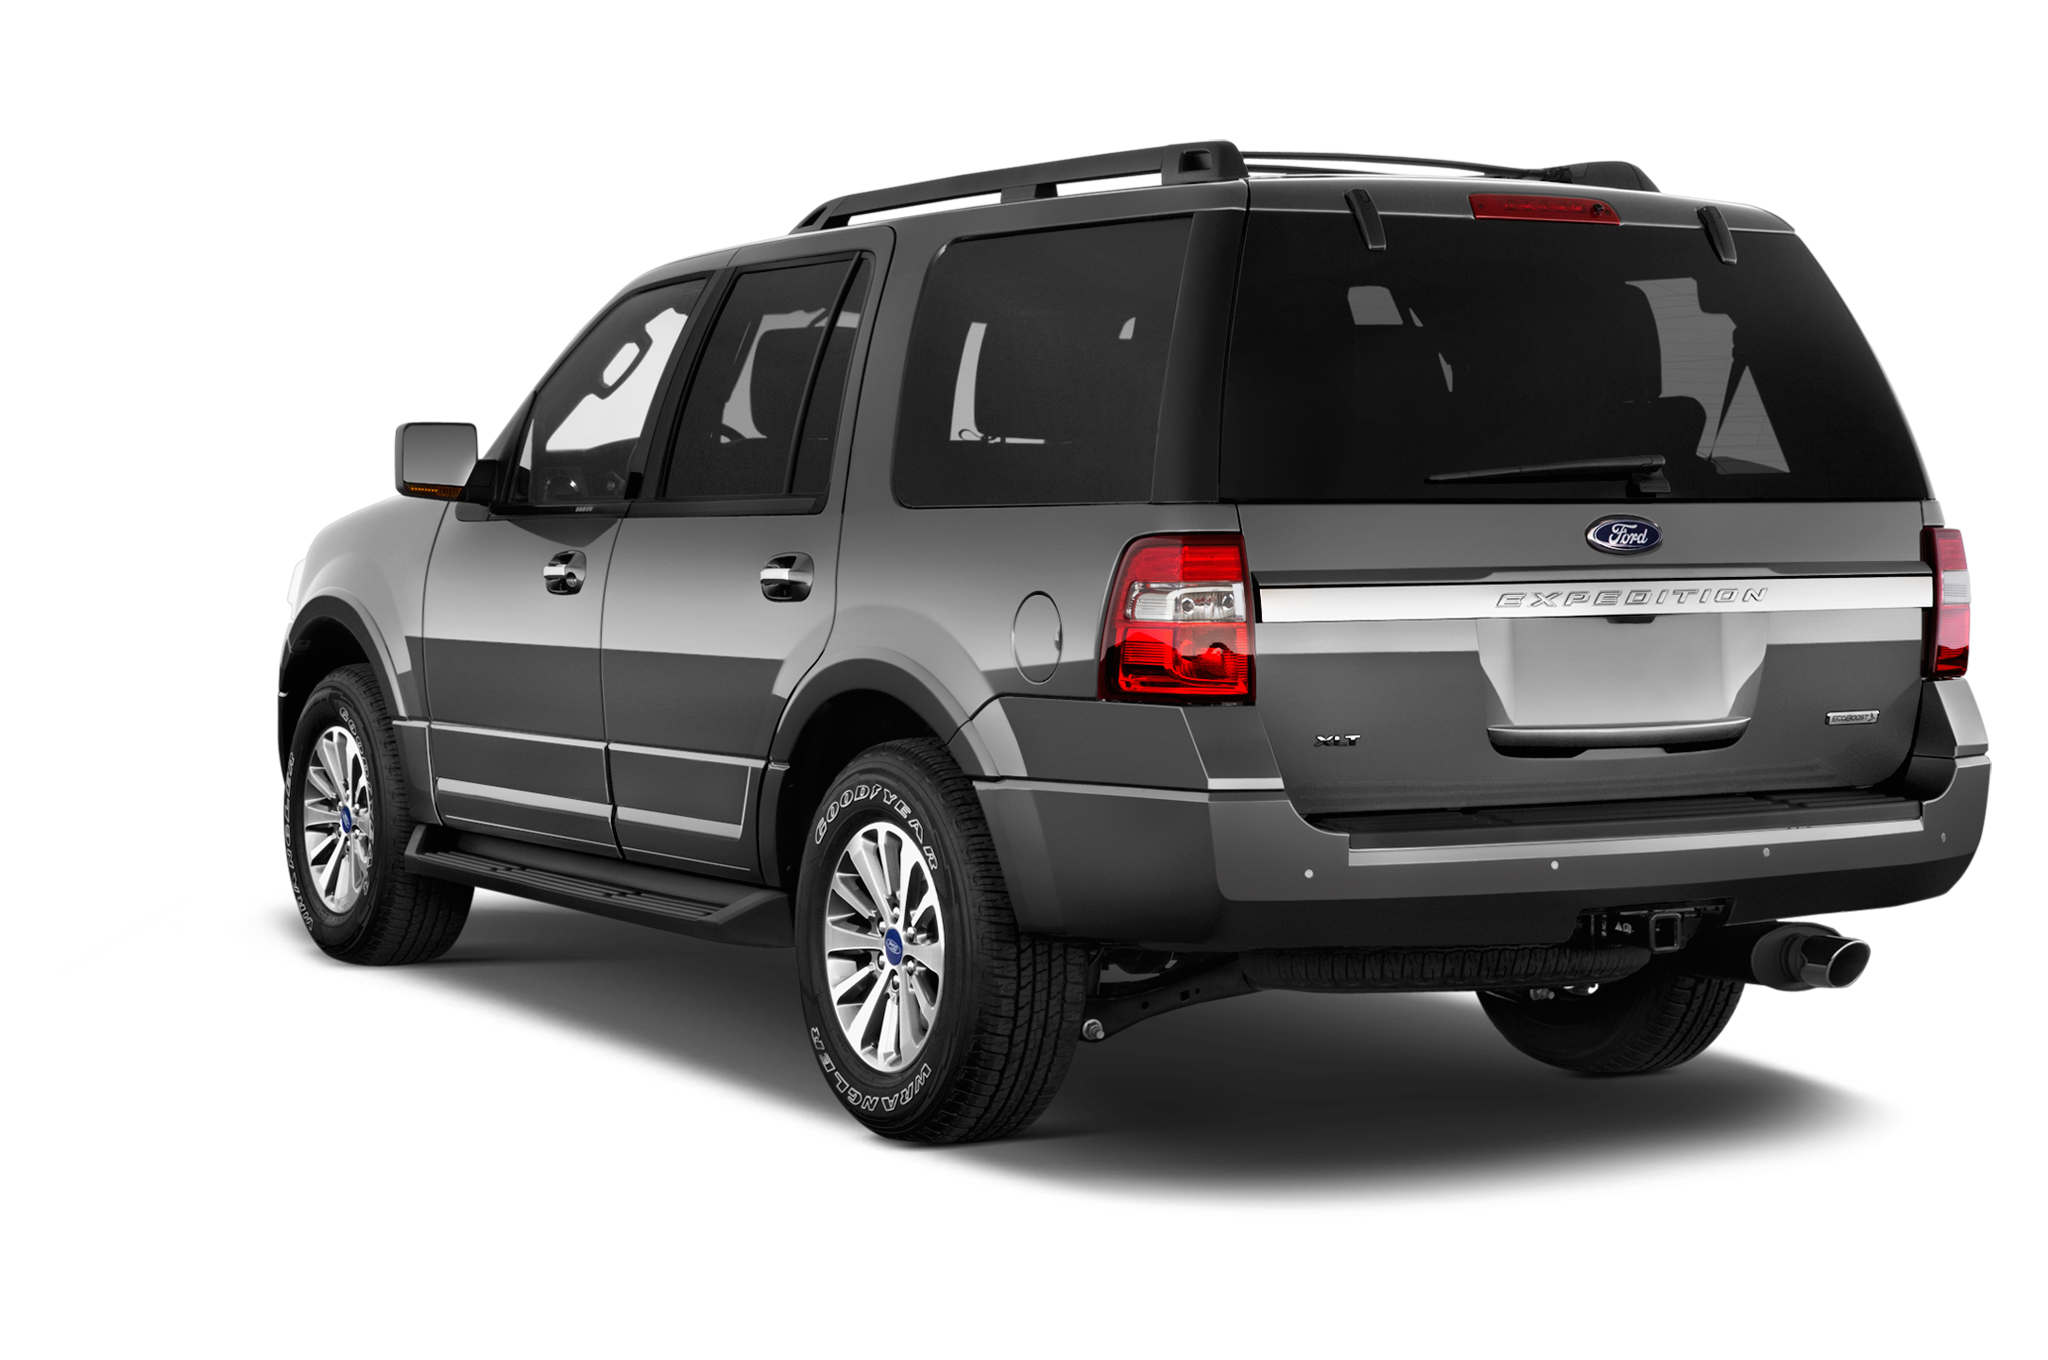 2015 ford expedition updated with ecoboost v 6 engine automobile magazine. Black Bedroom Furniture Sets. Home Design Ideas